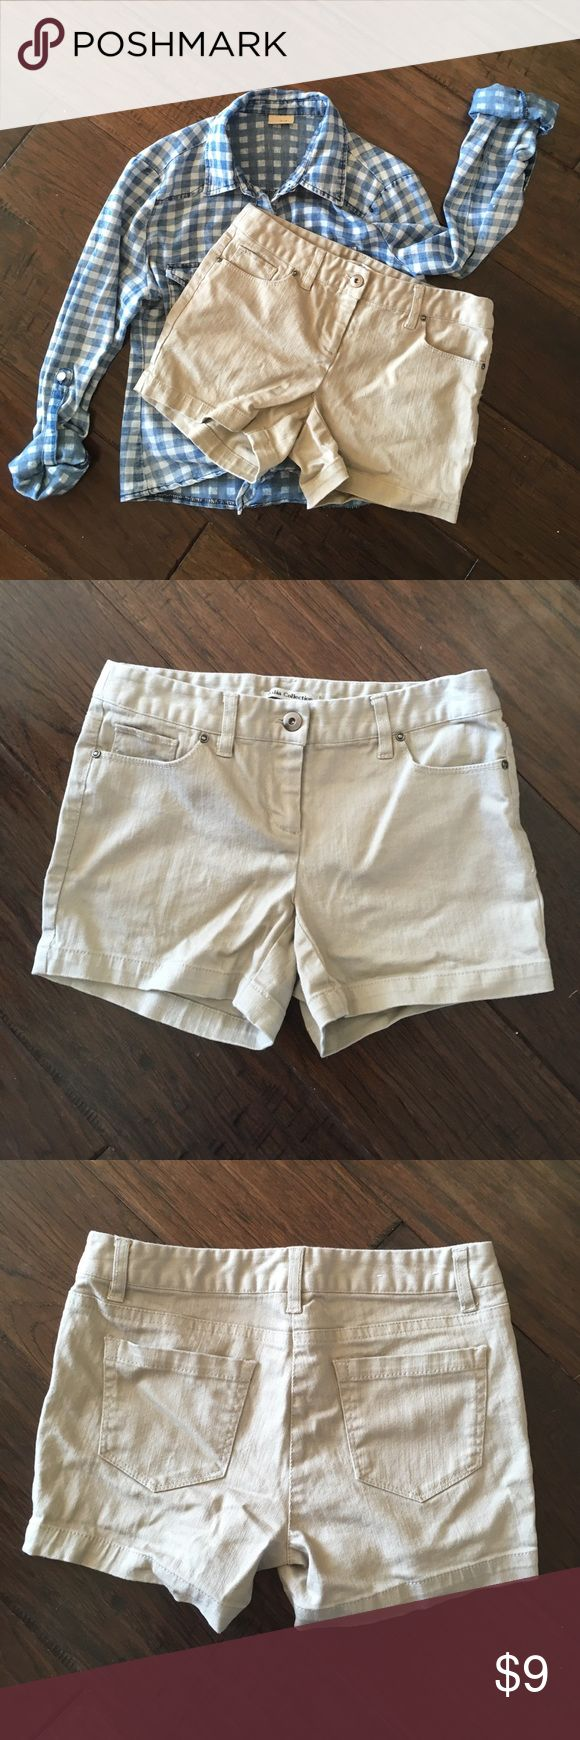 ⚡️SALE⚡️ Women's Khaki Shorts - Size 2 Great pair of khaki shorts for those summer months. Made of 98% cotton and 2% spandex, which gives it the perfect amount of stretch. Bundle with other items to save! Button-up shirt not included. Bundle with other items to save more! Shorts